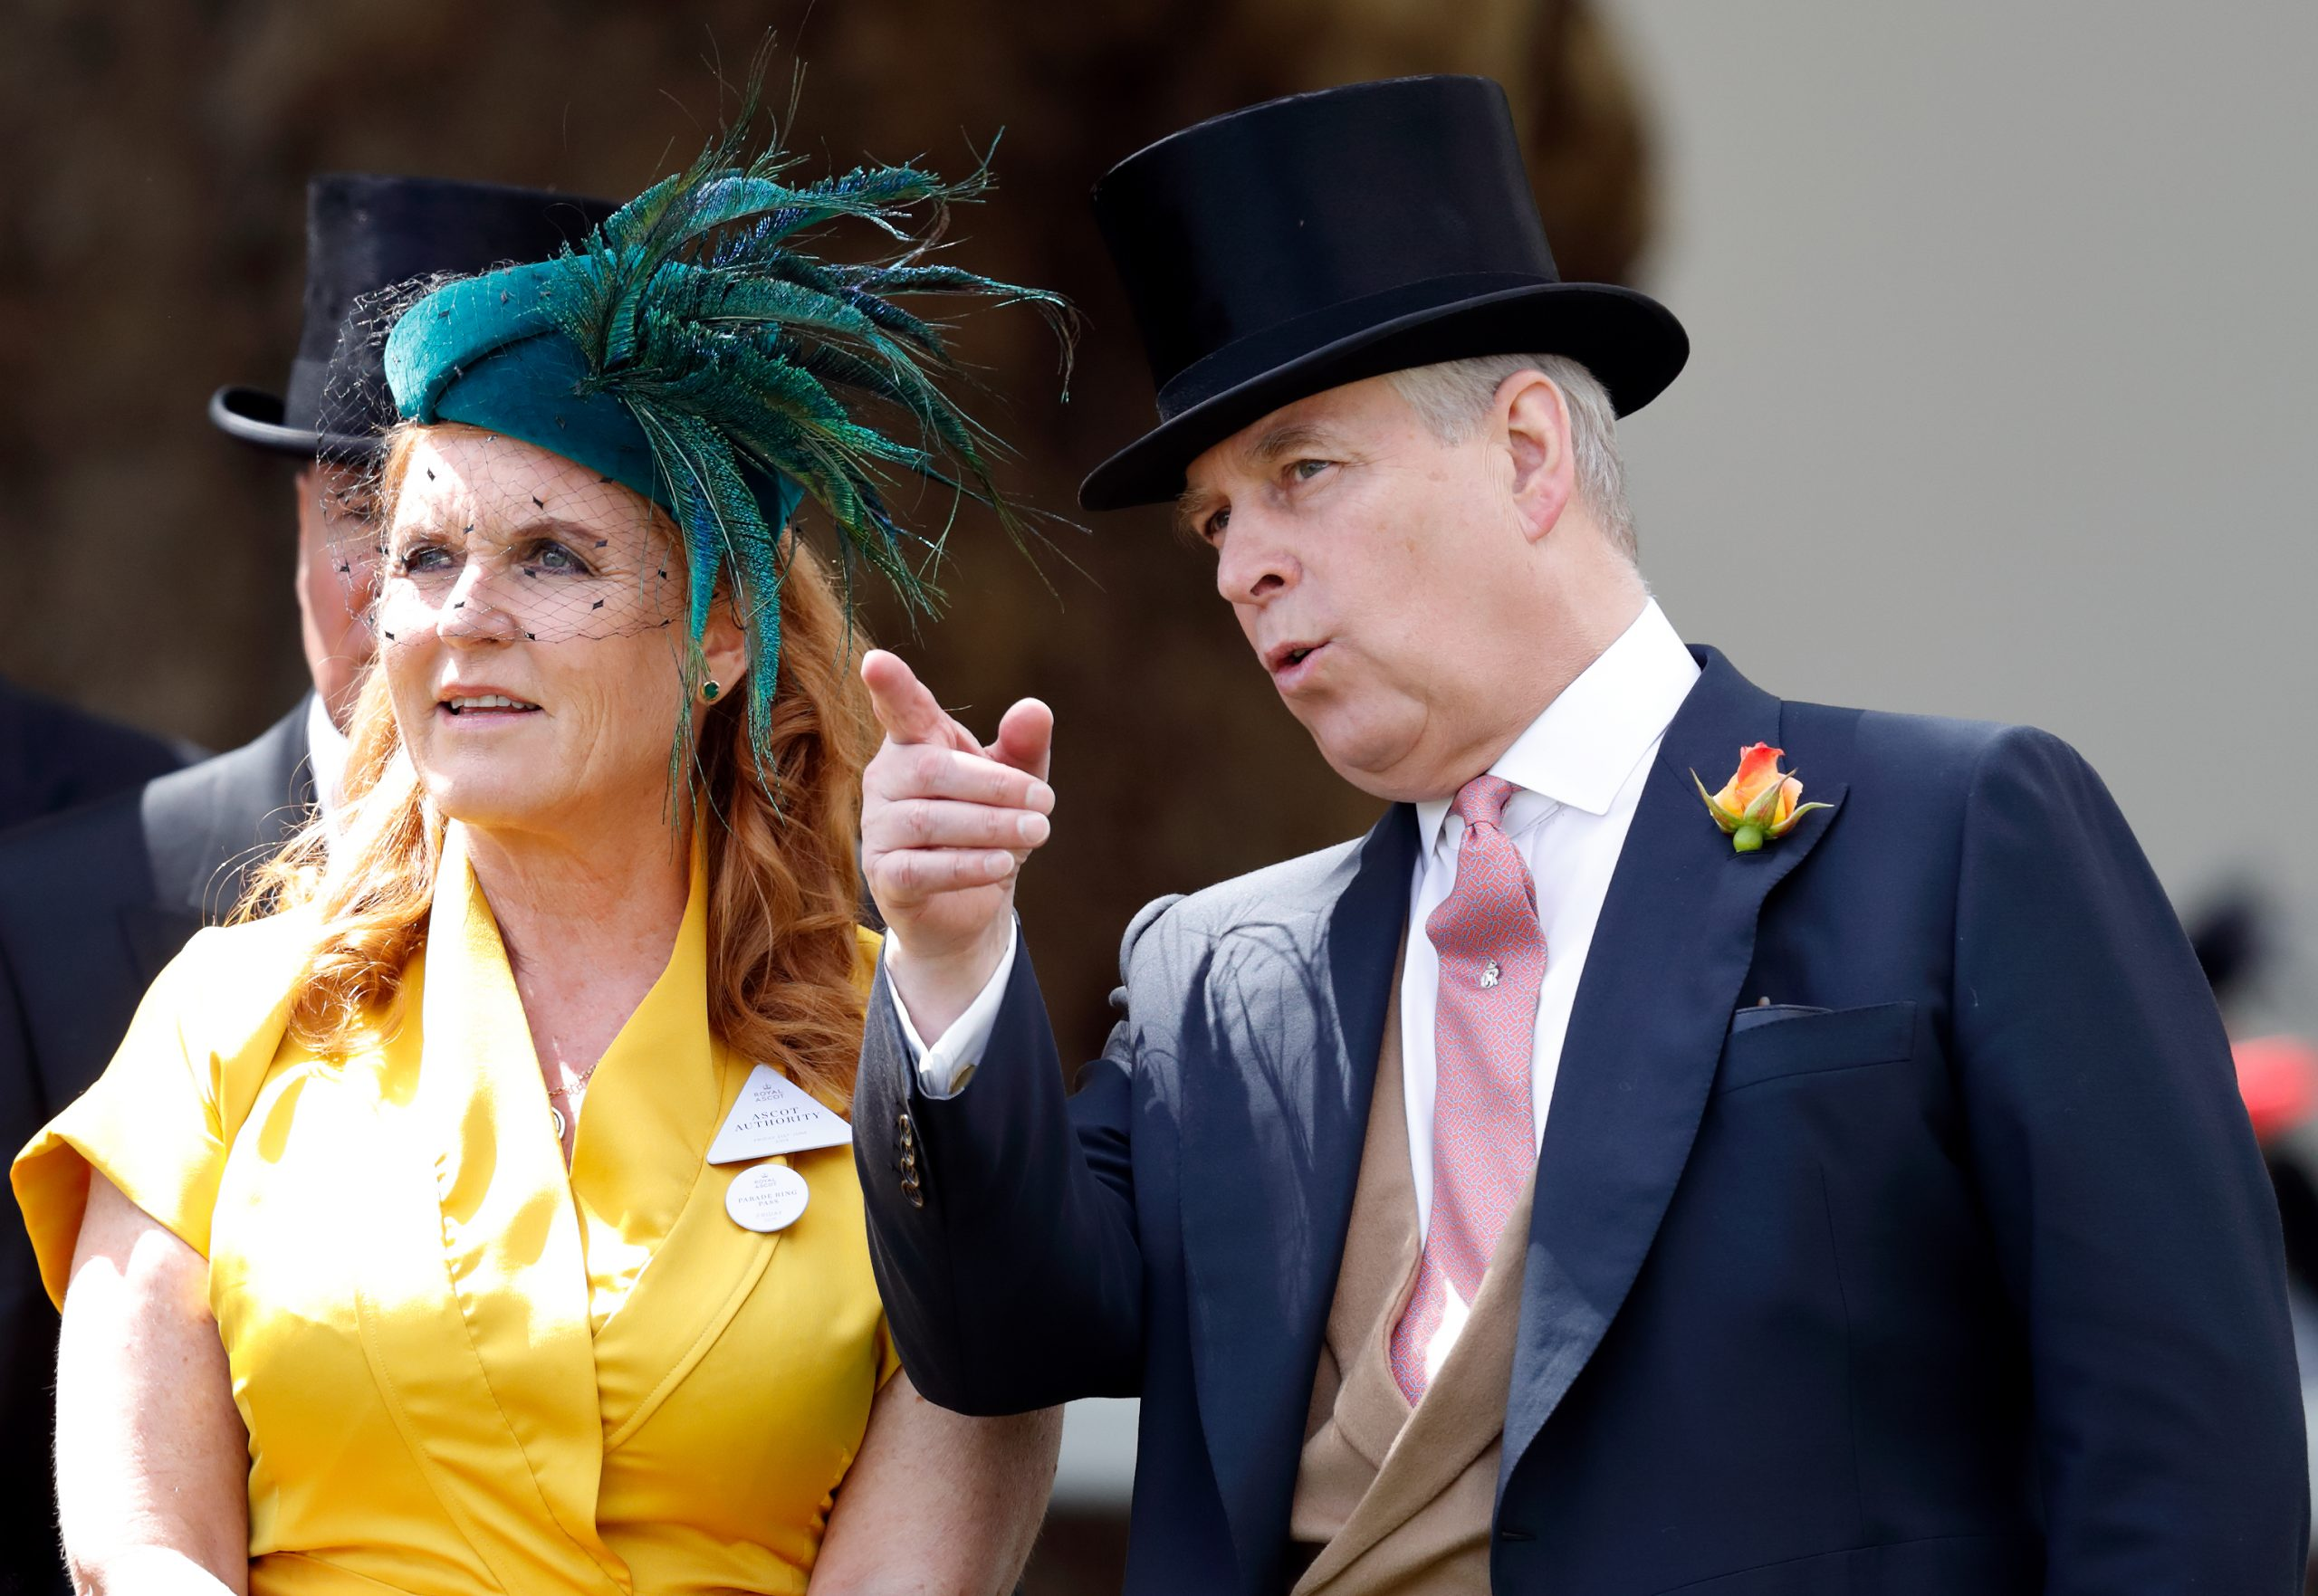 Prince Andrew And Sarah Ferguson Pictured For The First Time Since